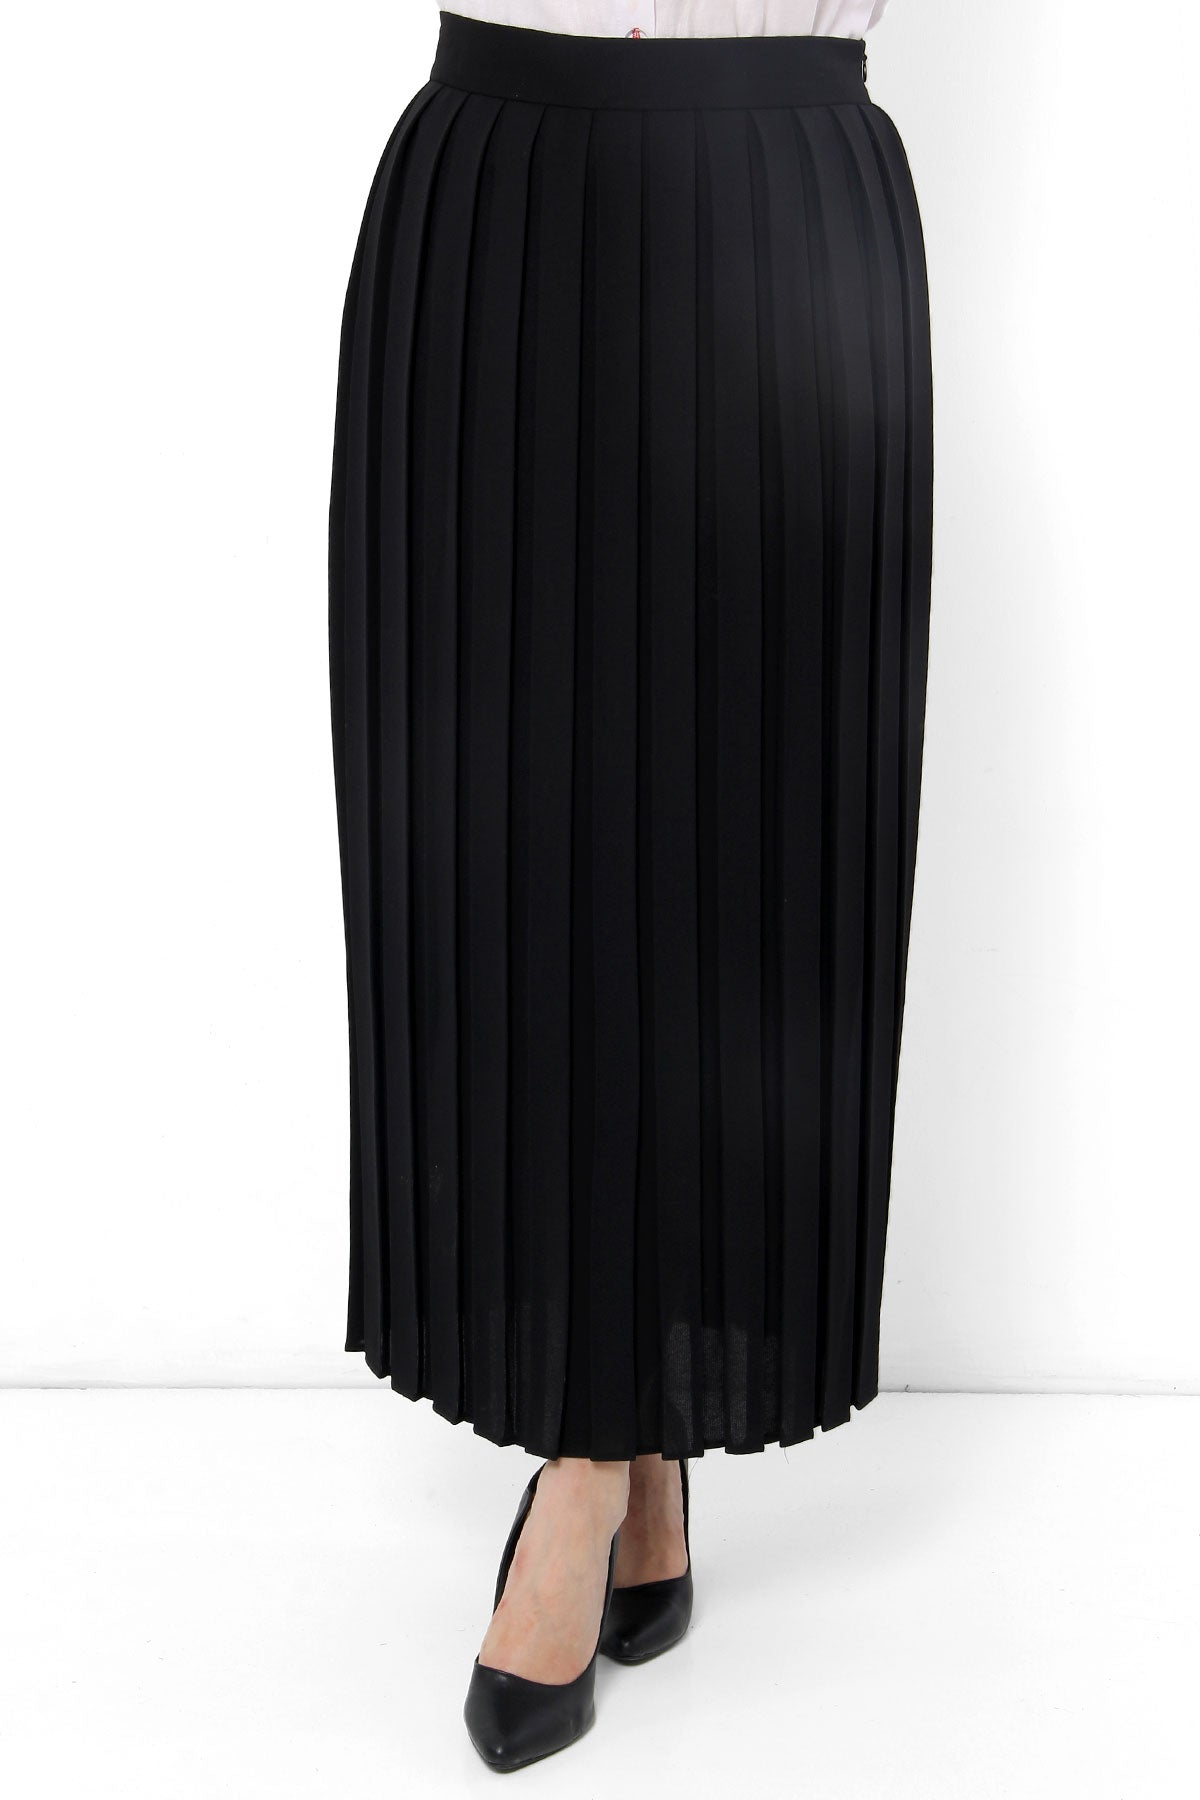 Women's Pleated Black Modest Midi Skirt